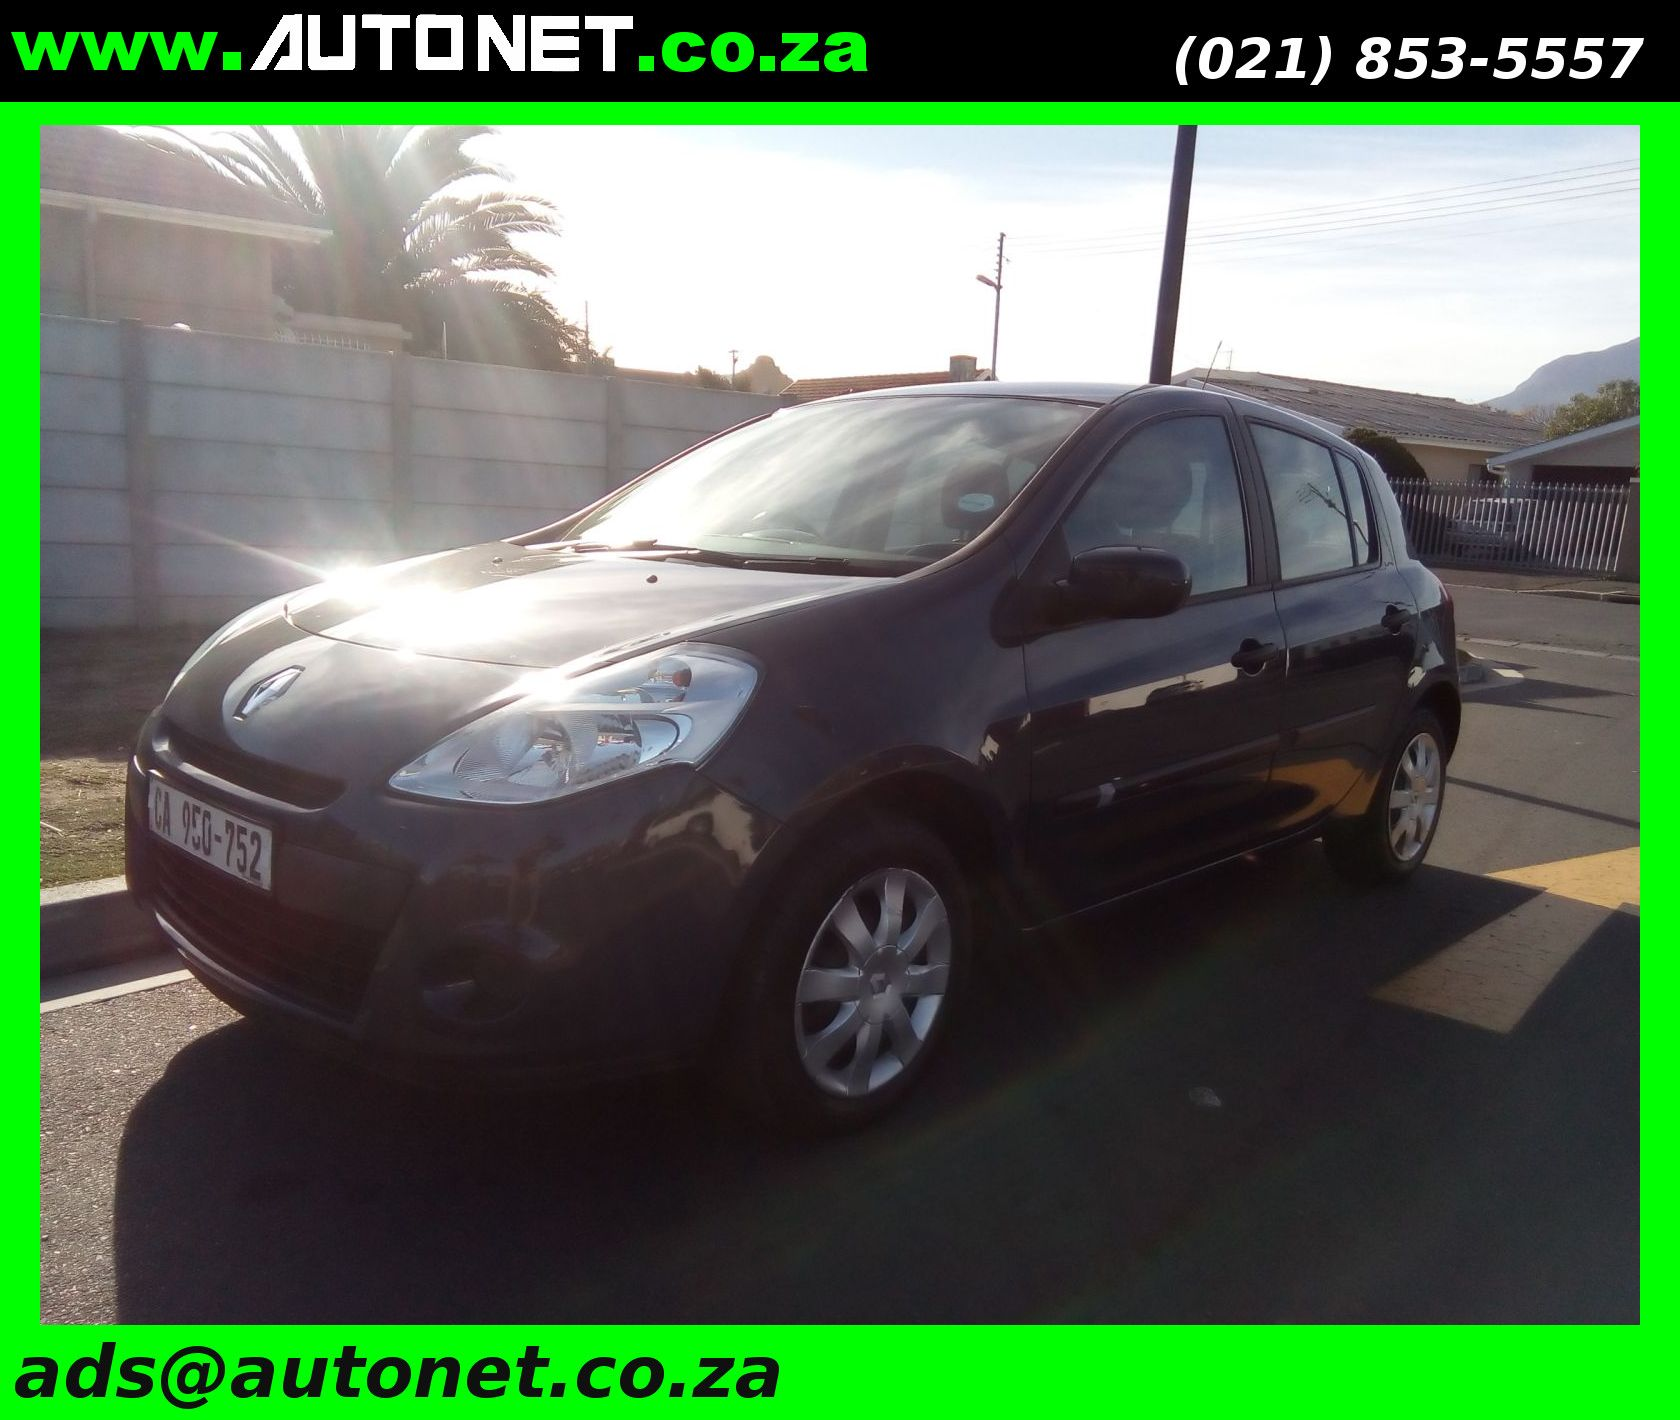 Yahoo Used Cars New Renault Clio Iii 1 6 Yahoo 5dr Available